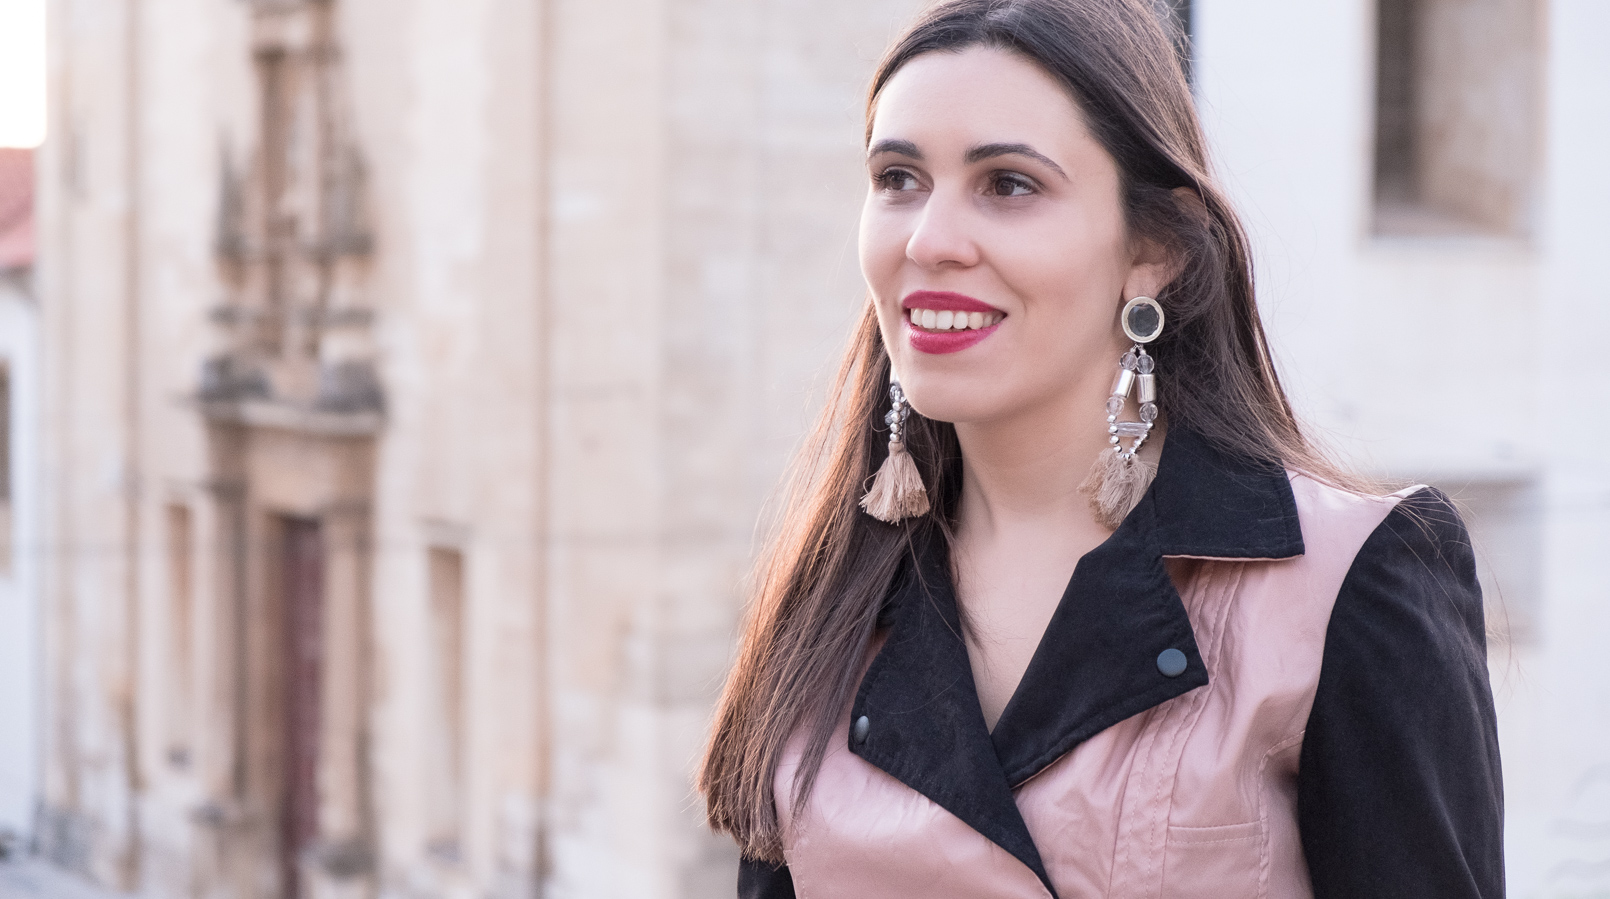 Le Fashionaire How to wear pink in a total look blogger catarine martins fashion inspiration fake leather pink black velvet bershka jaket tassels pale pink pvc plastic bold earrings 4442F EN